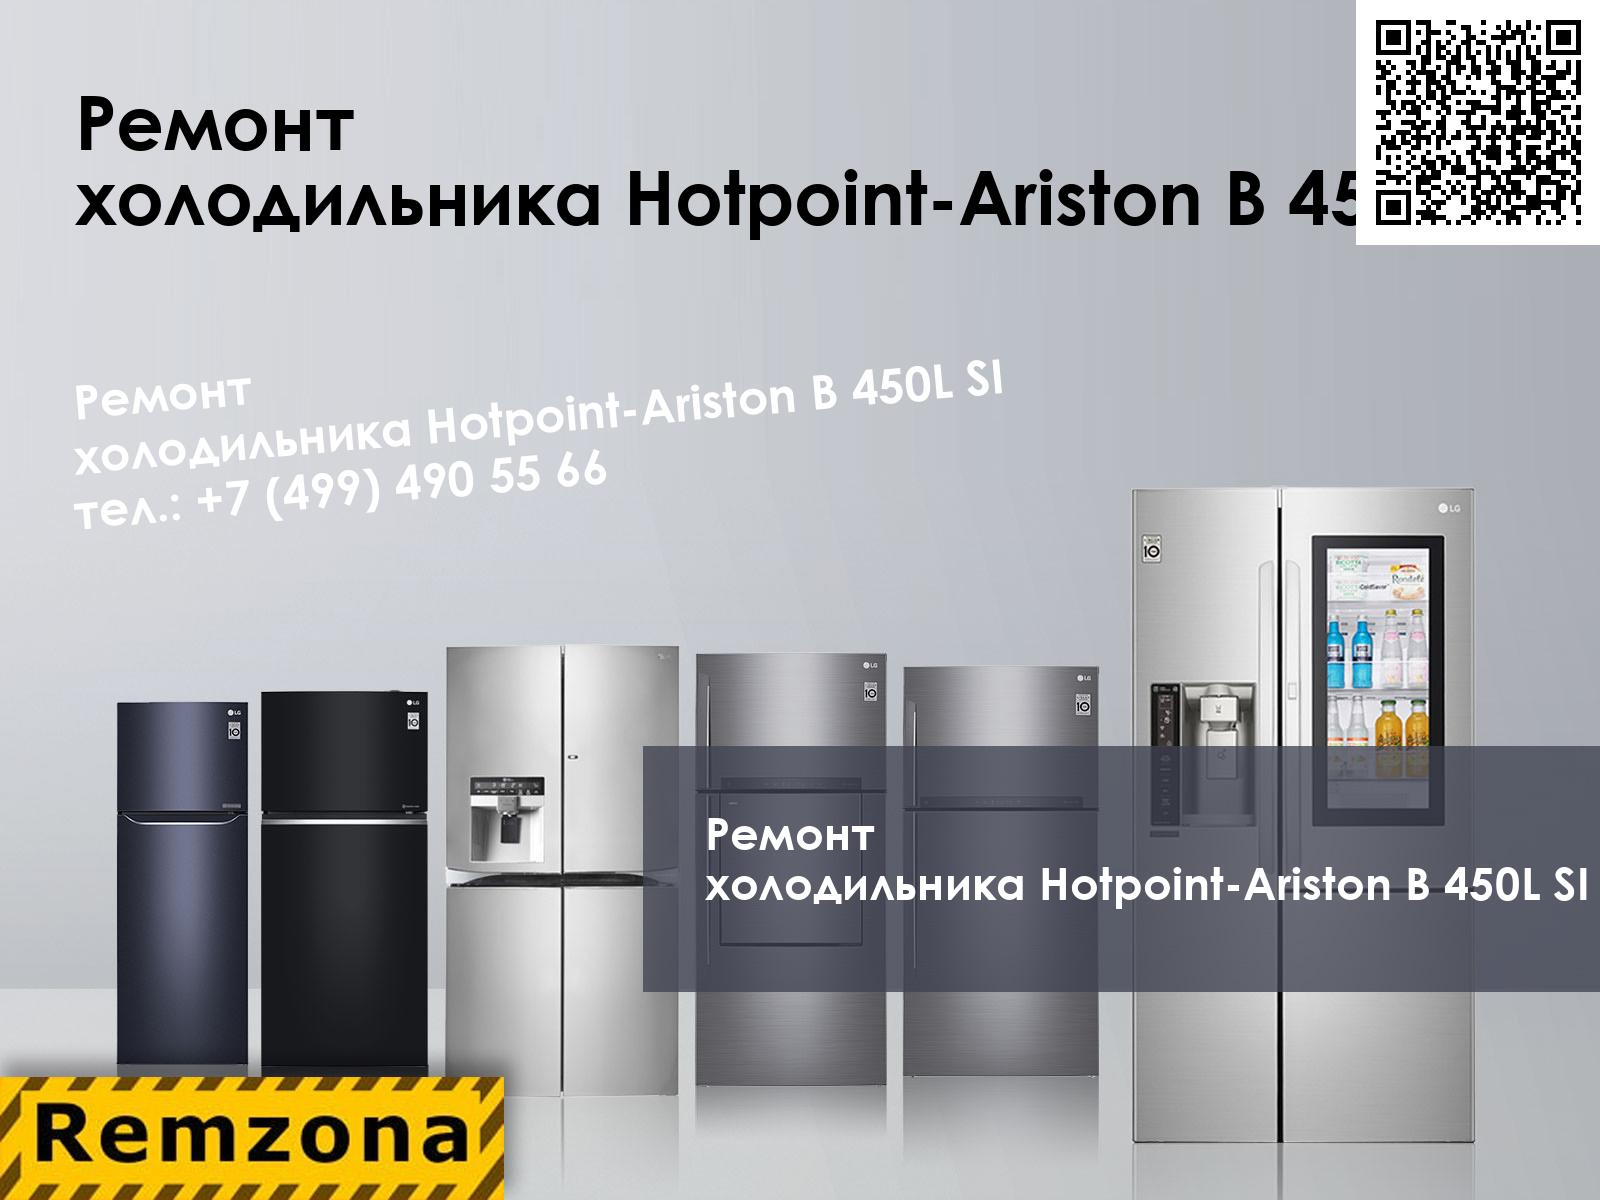 Ремонт холодильника Hotpoint-Ariston B 450L SI